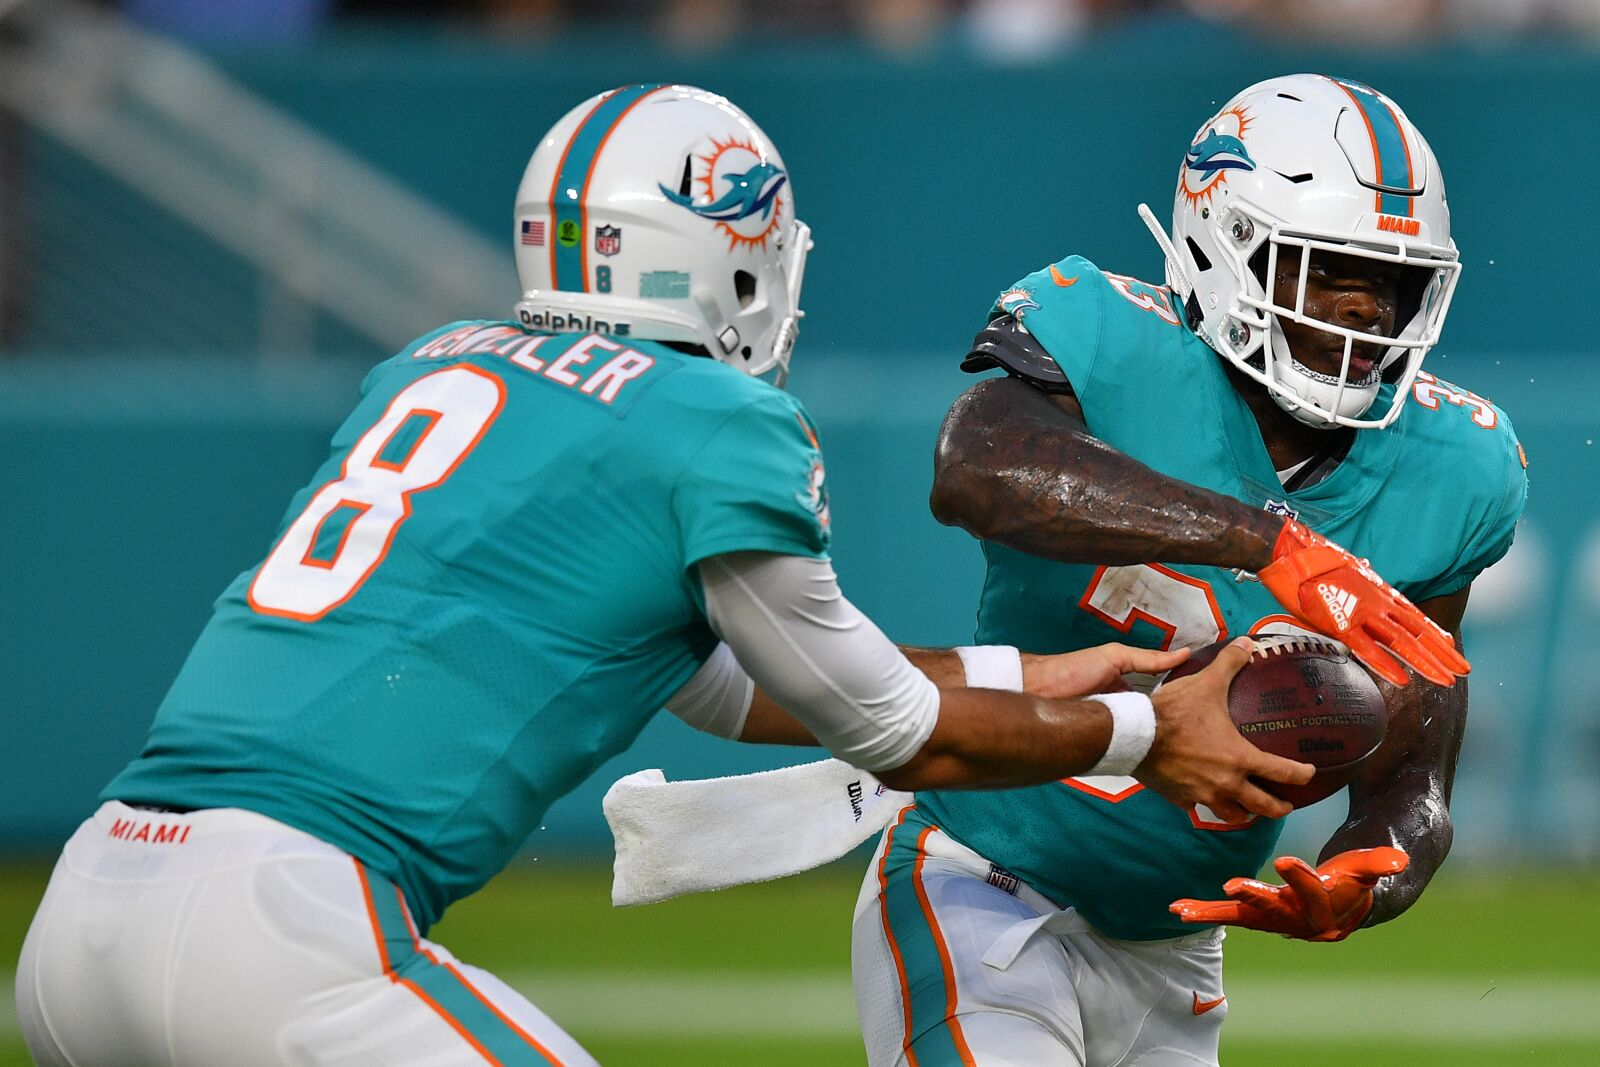 Breaking: Dolphins will go with Brock Osweiler as Ryan Tannehill sits